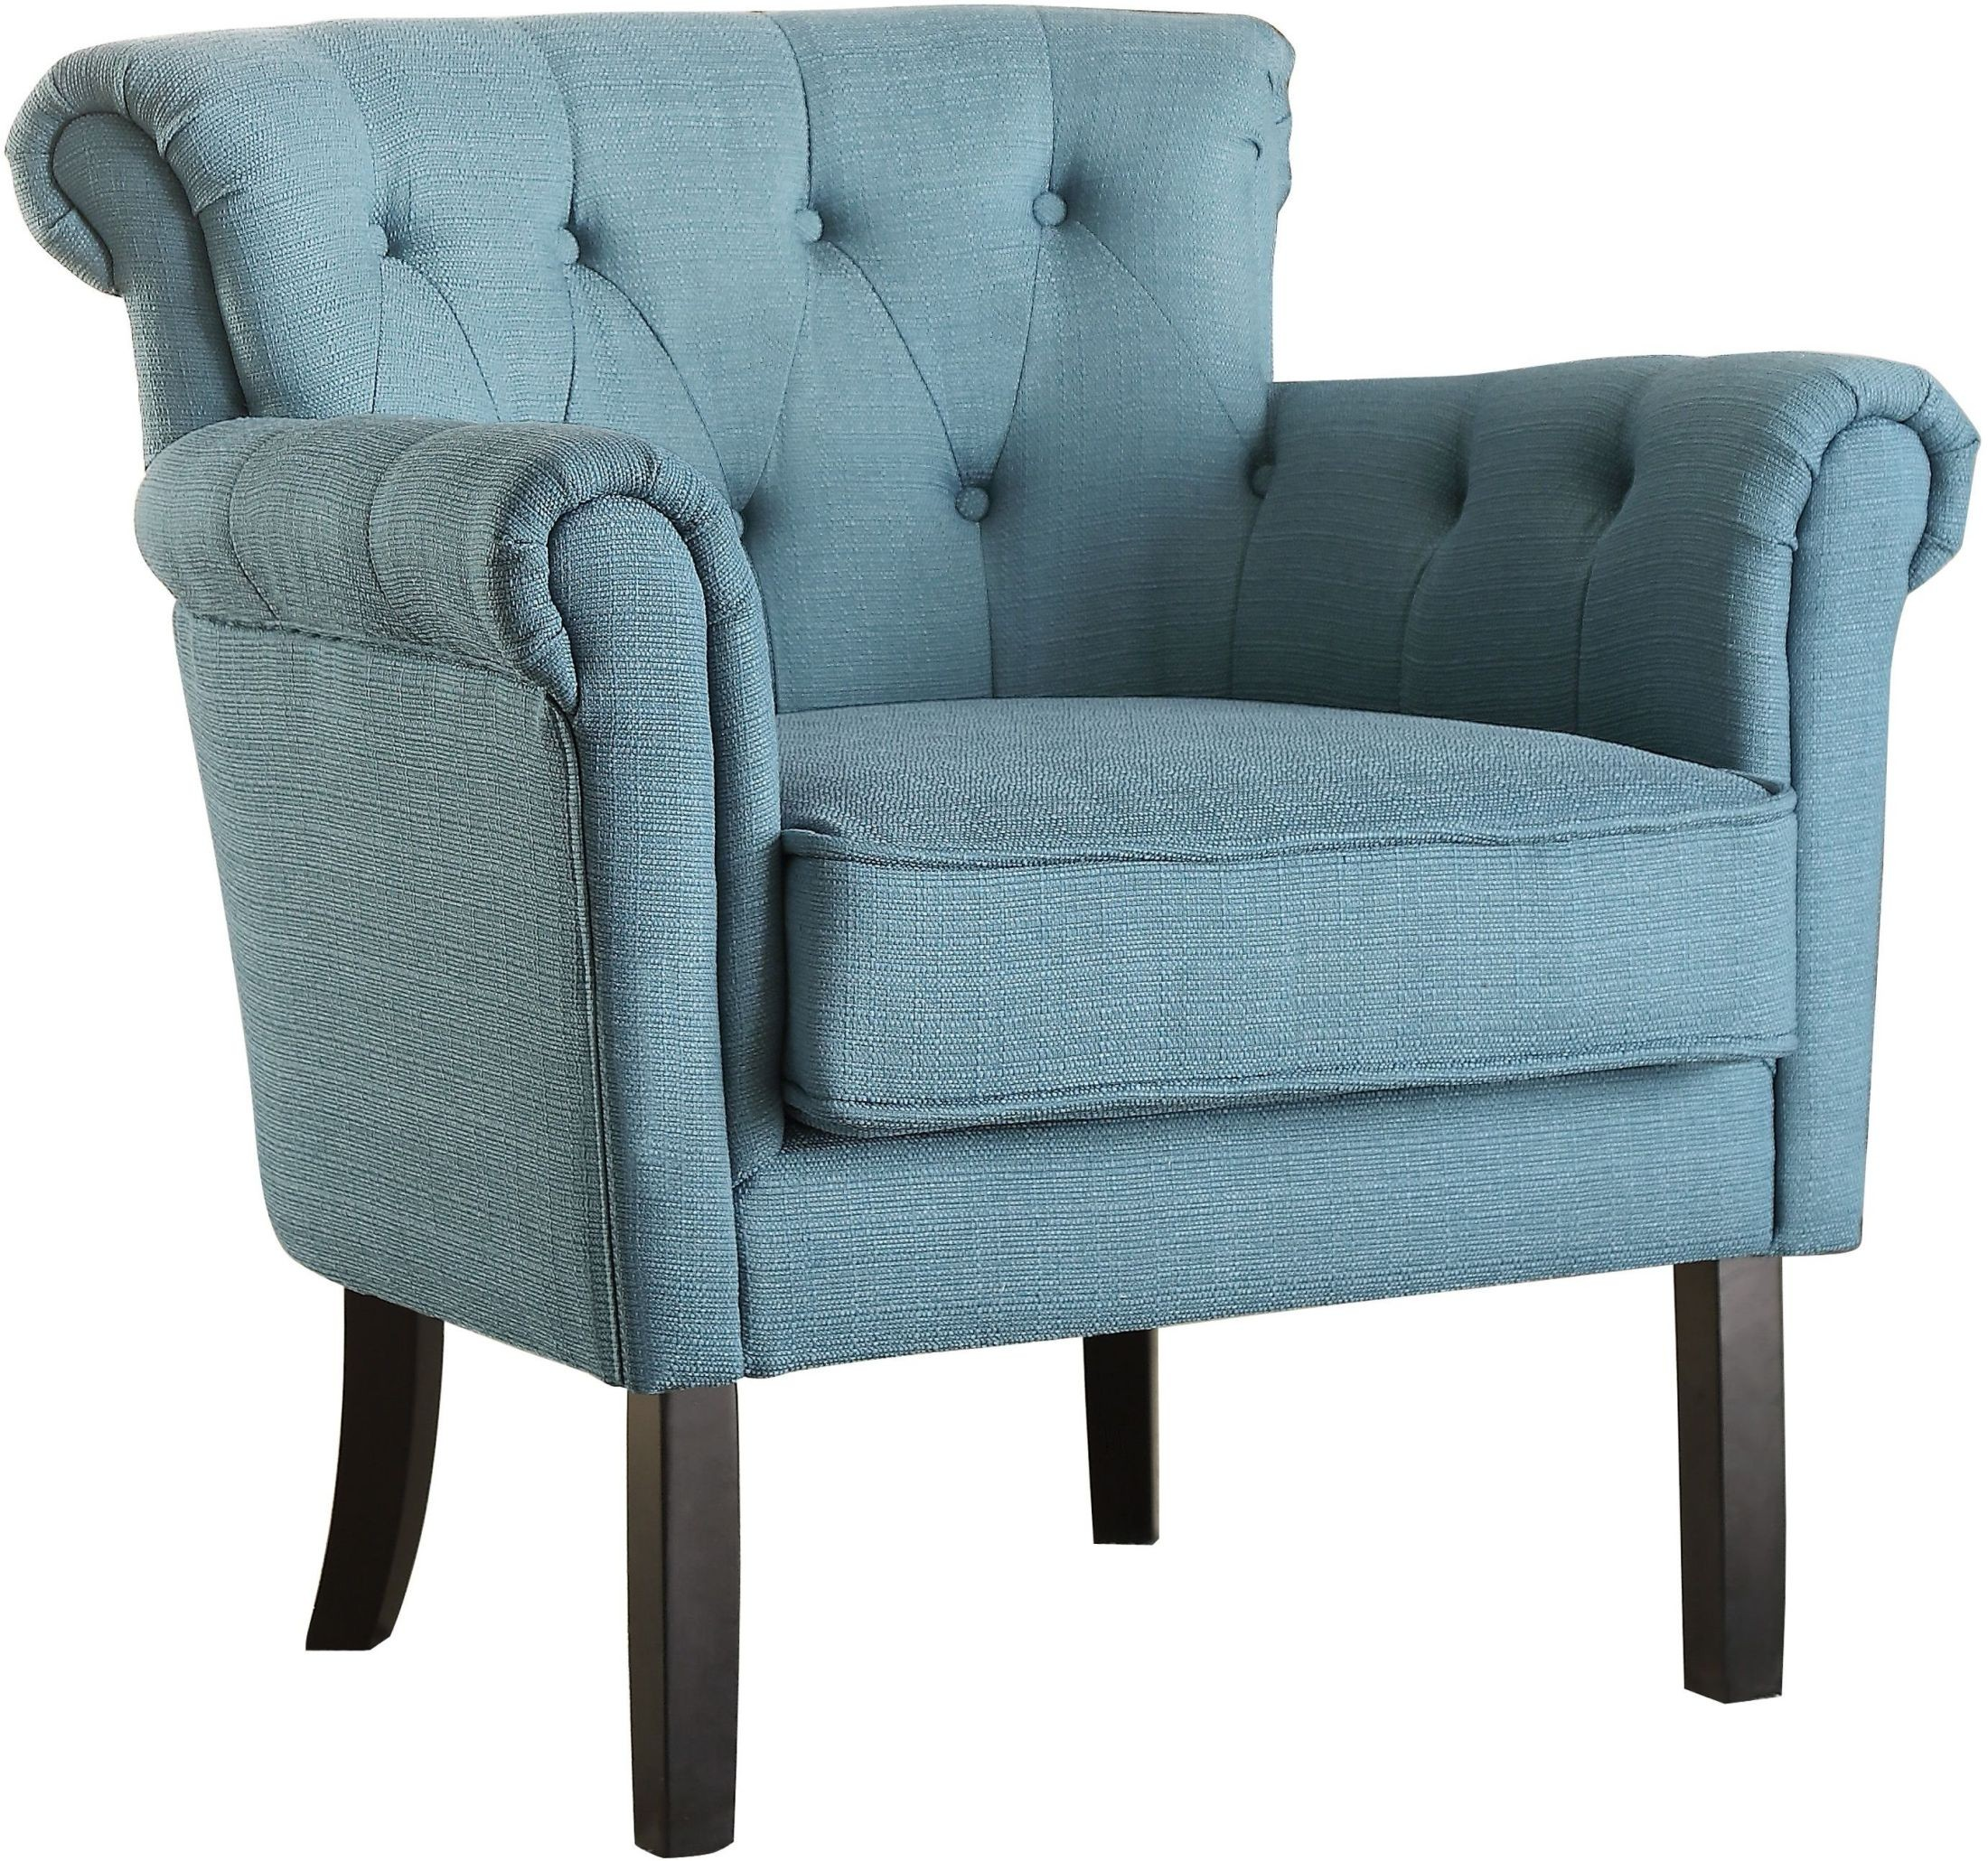 Barlowe Dark Teal Accent Chair from Homelegance  Coleman